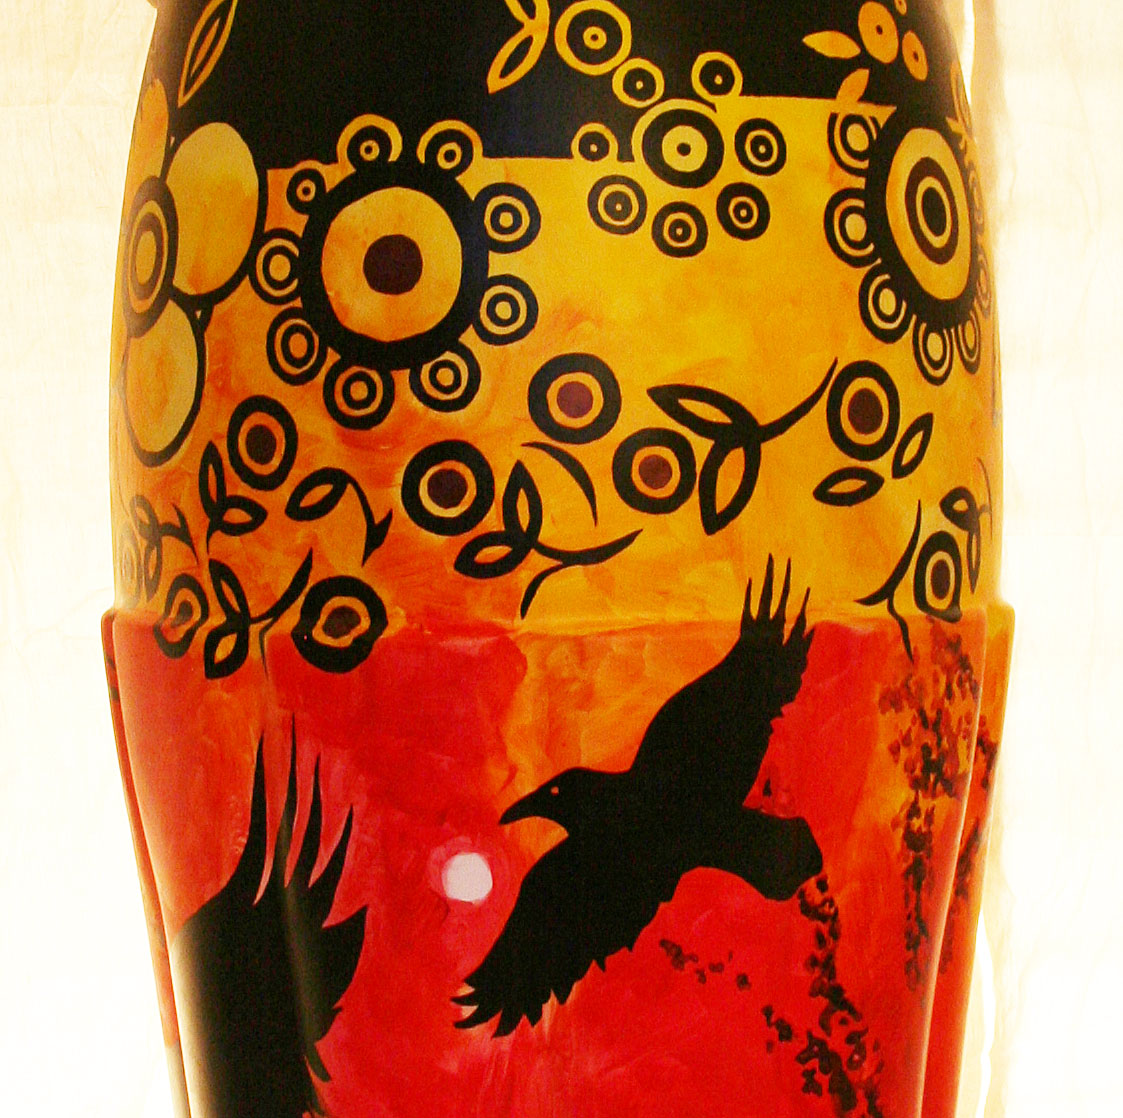 Detail coke bottle design by Kim Stewart